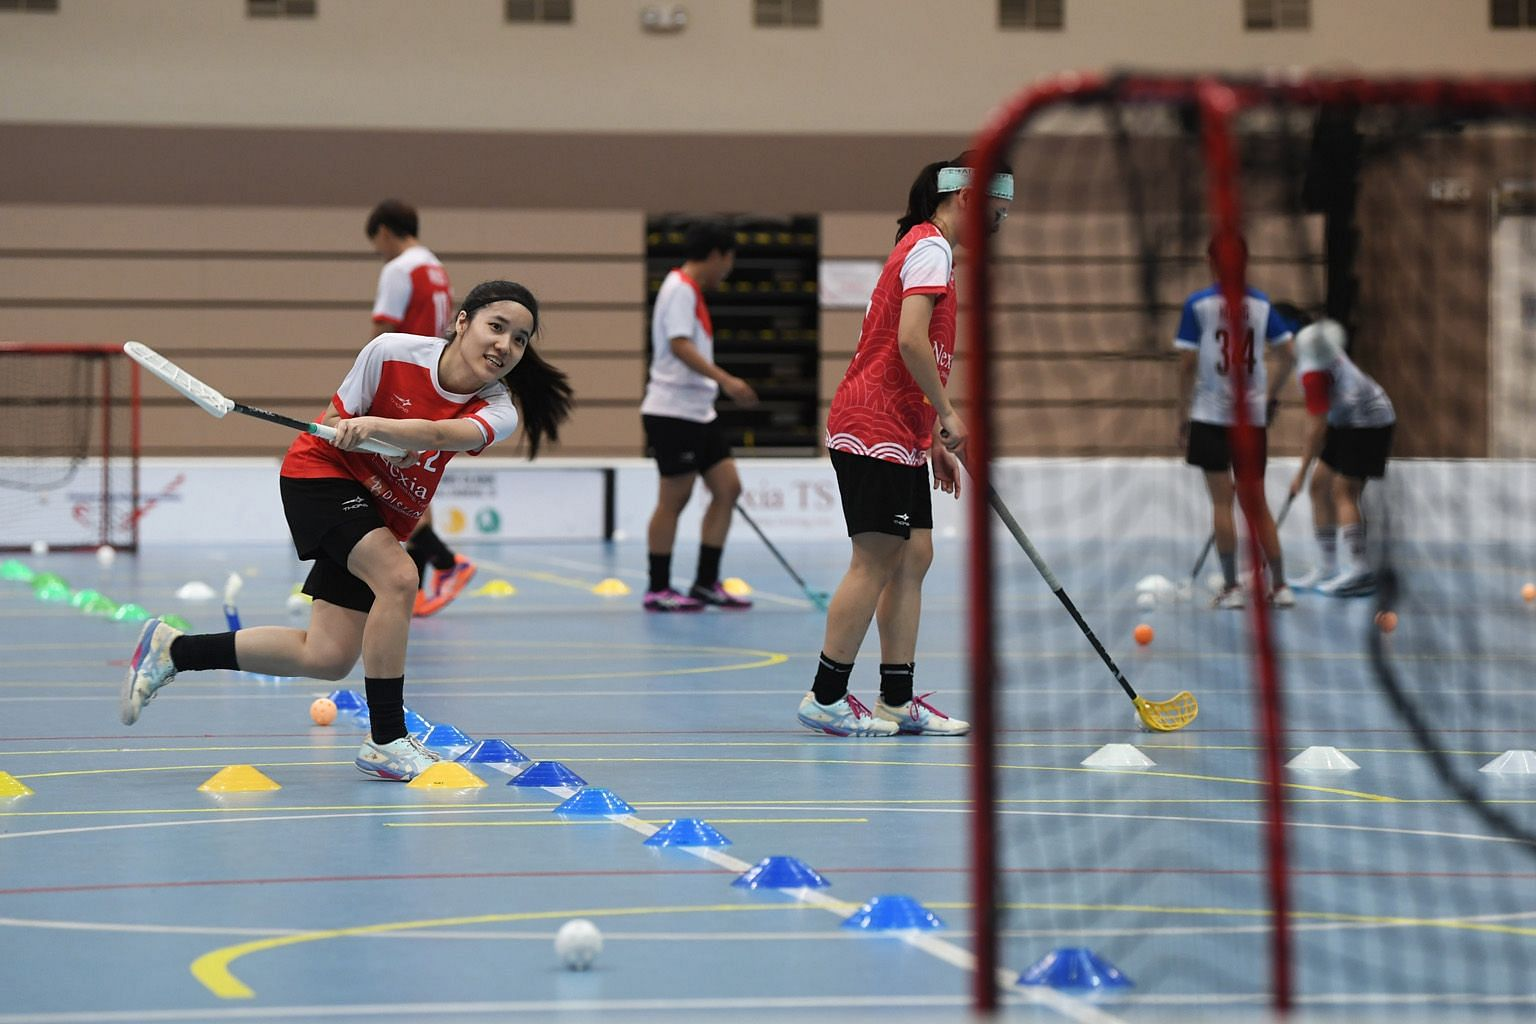 Two-time SEA Games gold medallist Amanda Yeap practising shooting at floorball training. Most sportsmen are still restricted to working out in small groups. ST PHOTO: KHALID BABA